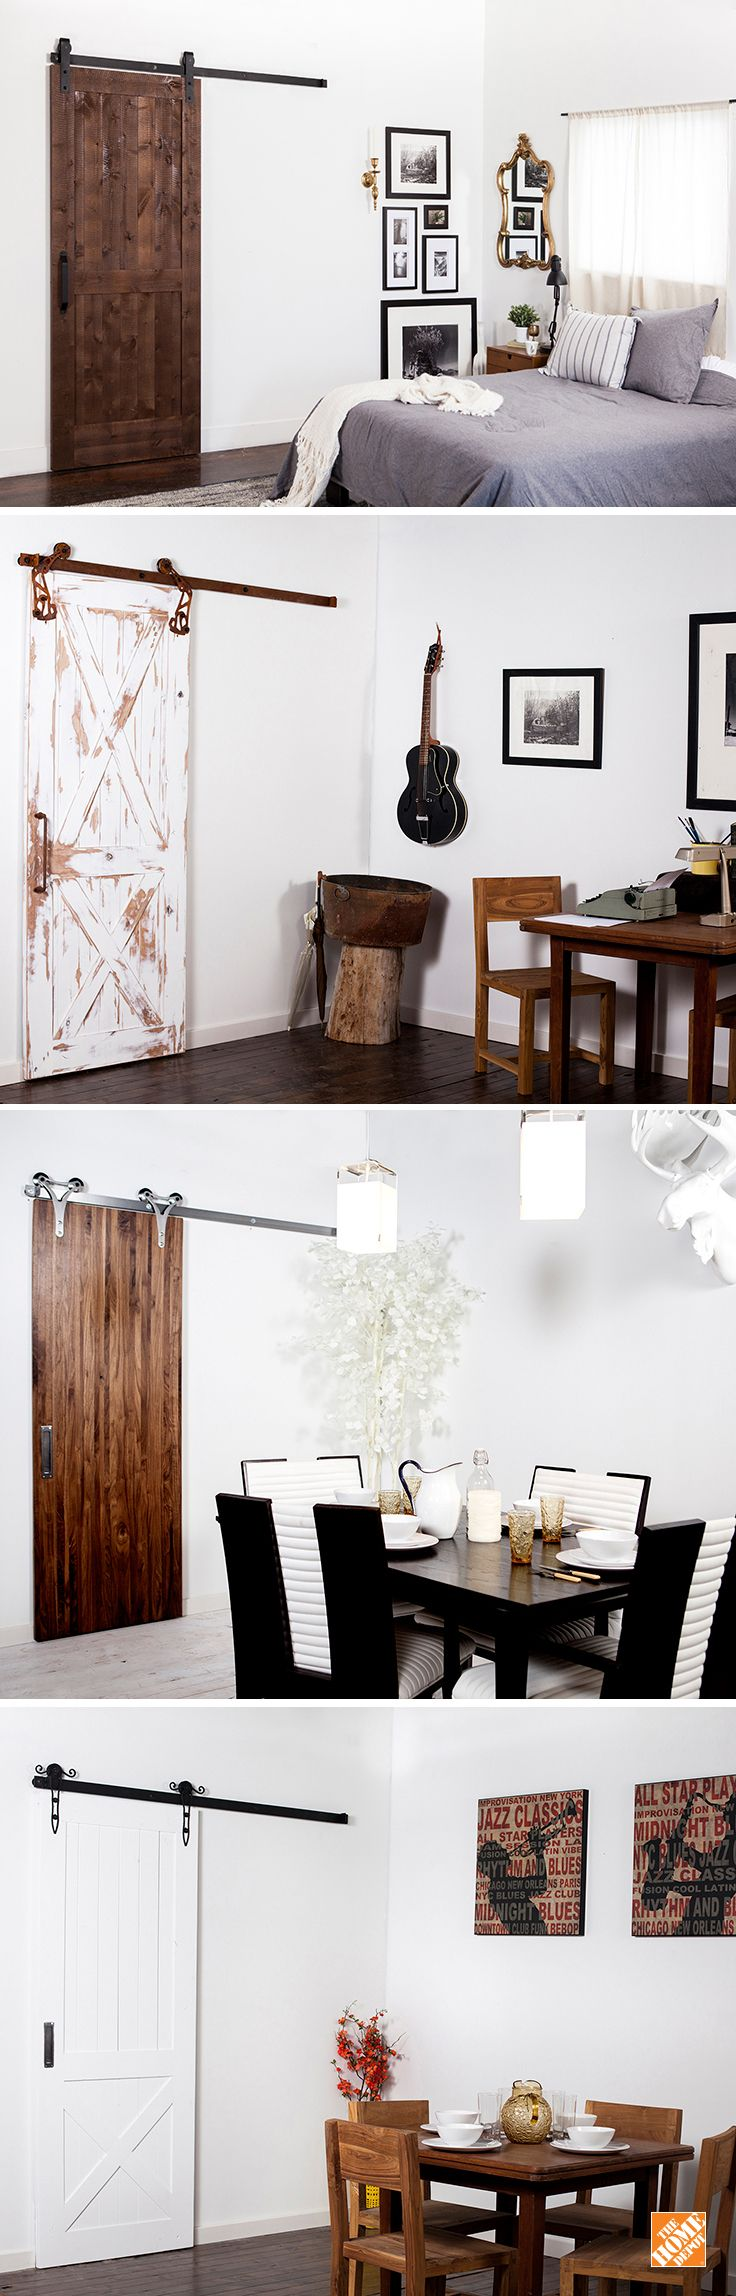 Here's a functional and stylish idea for a room upgrade: install a barn door. Each kit comes prepackaged with all parts included. You get more space, more style and a doorway that easily slides open. From rustic and modern looks, to wood, composite, steel and more, there's a lot you can do to transform your space. Click through to see them at The Home Depot!